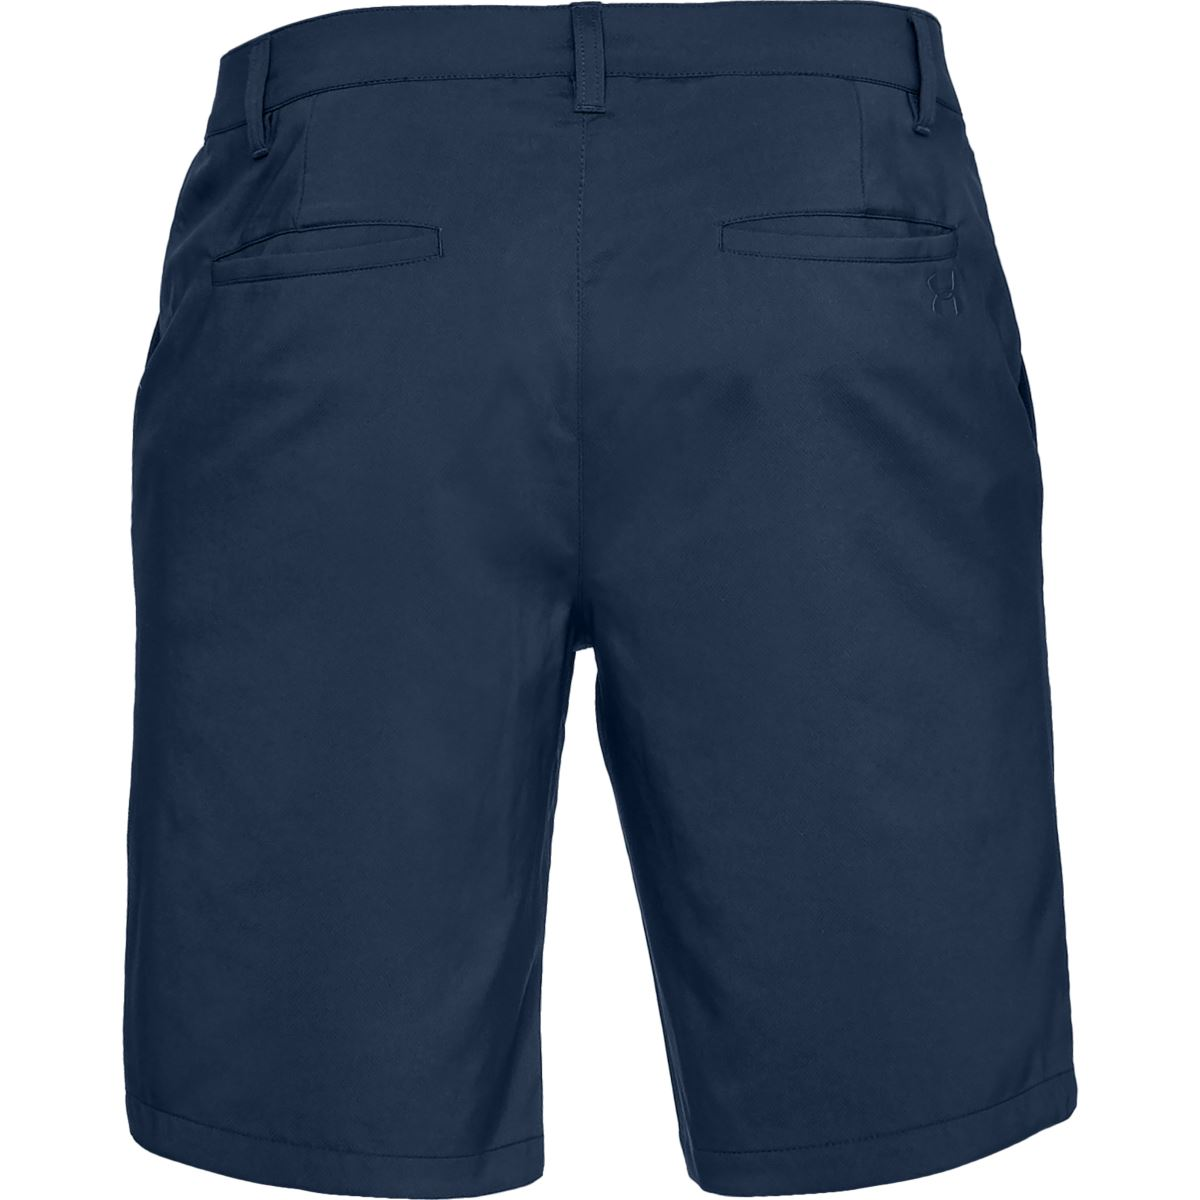 Under-Armour-2019-UA-Mens-EU-Tech-Stretch-Tapered-Fitted-Golf-Shorts thumbnail 5